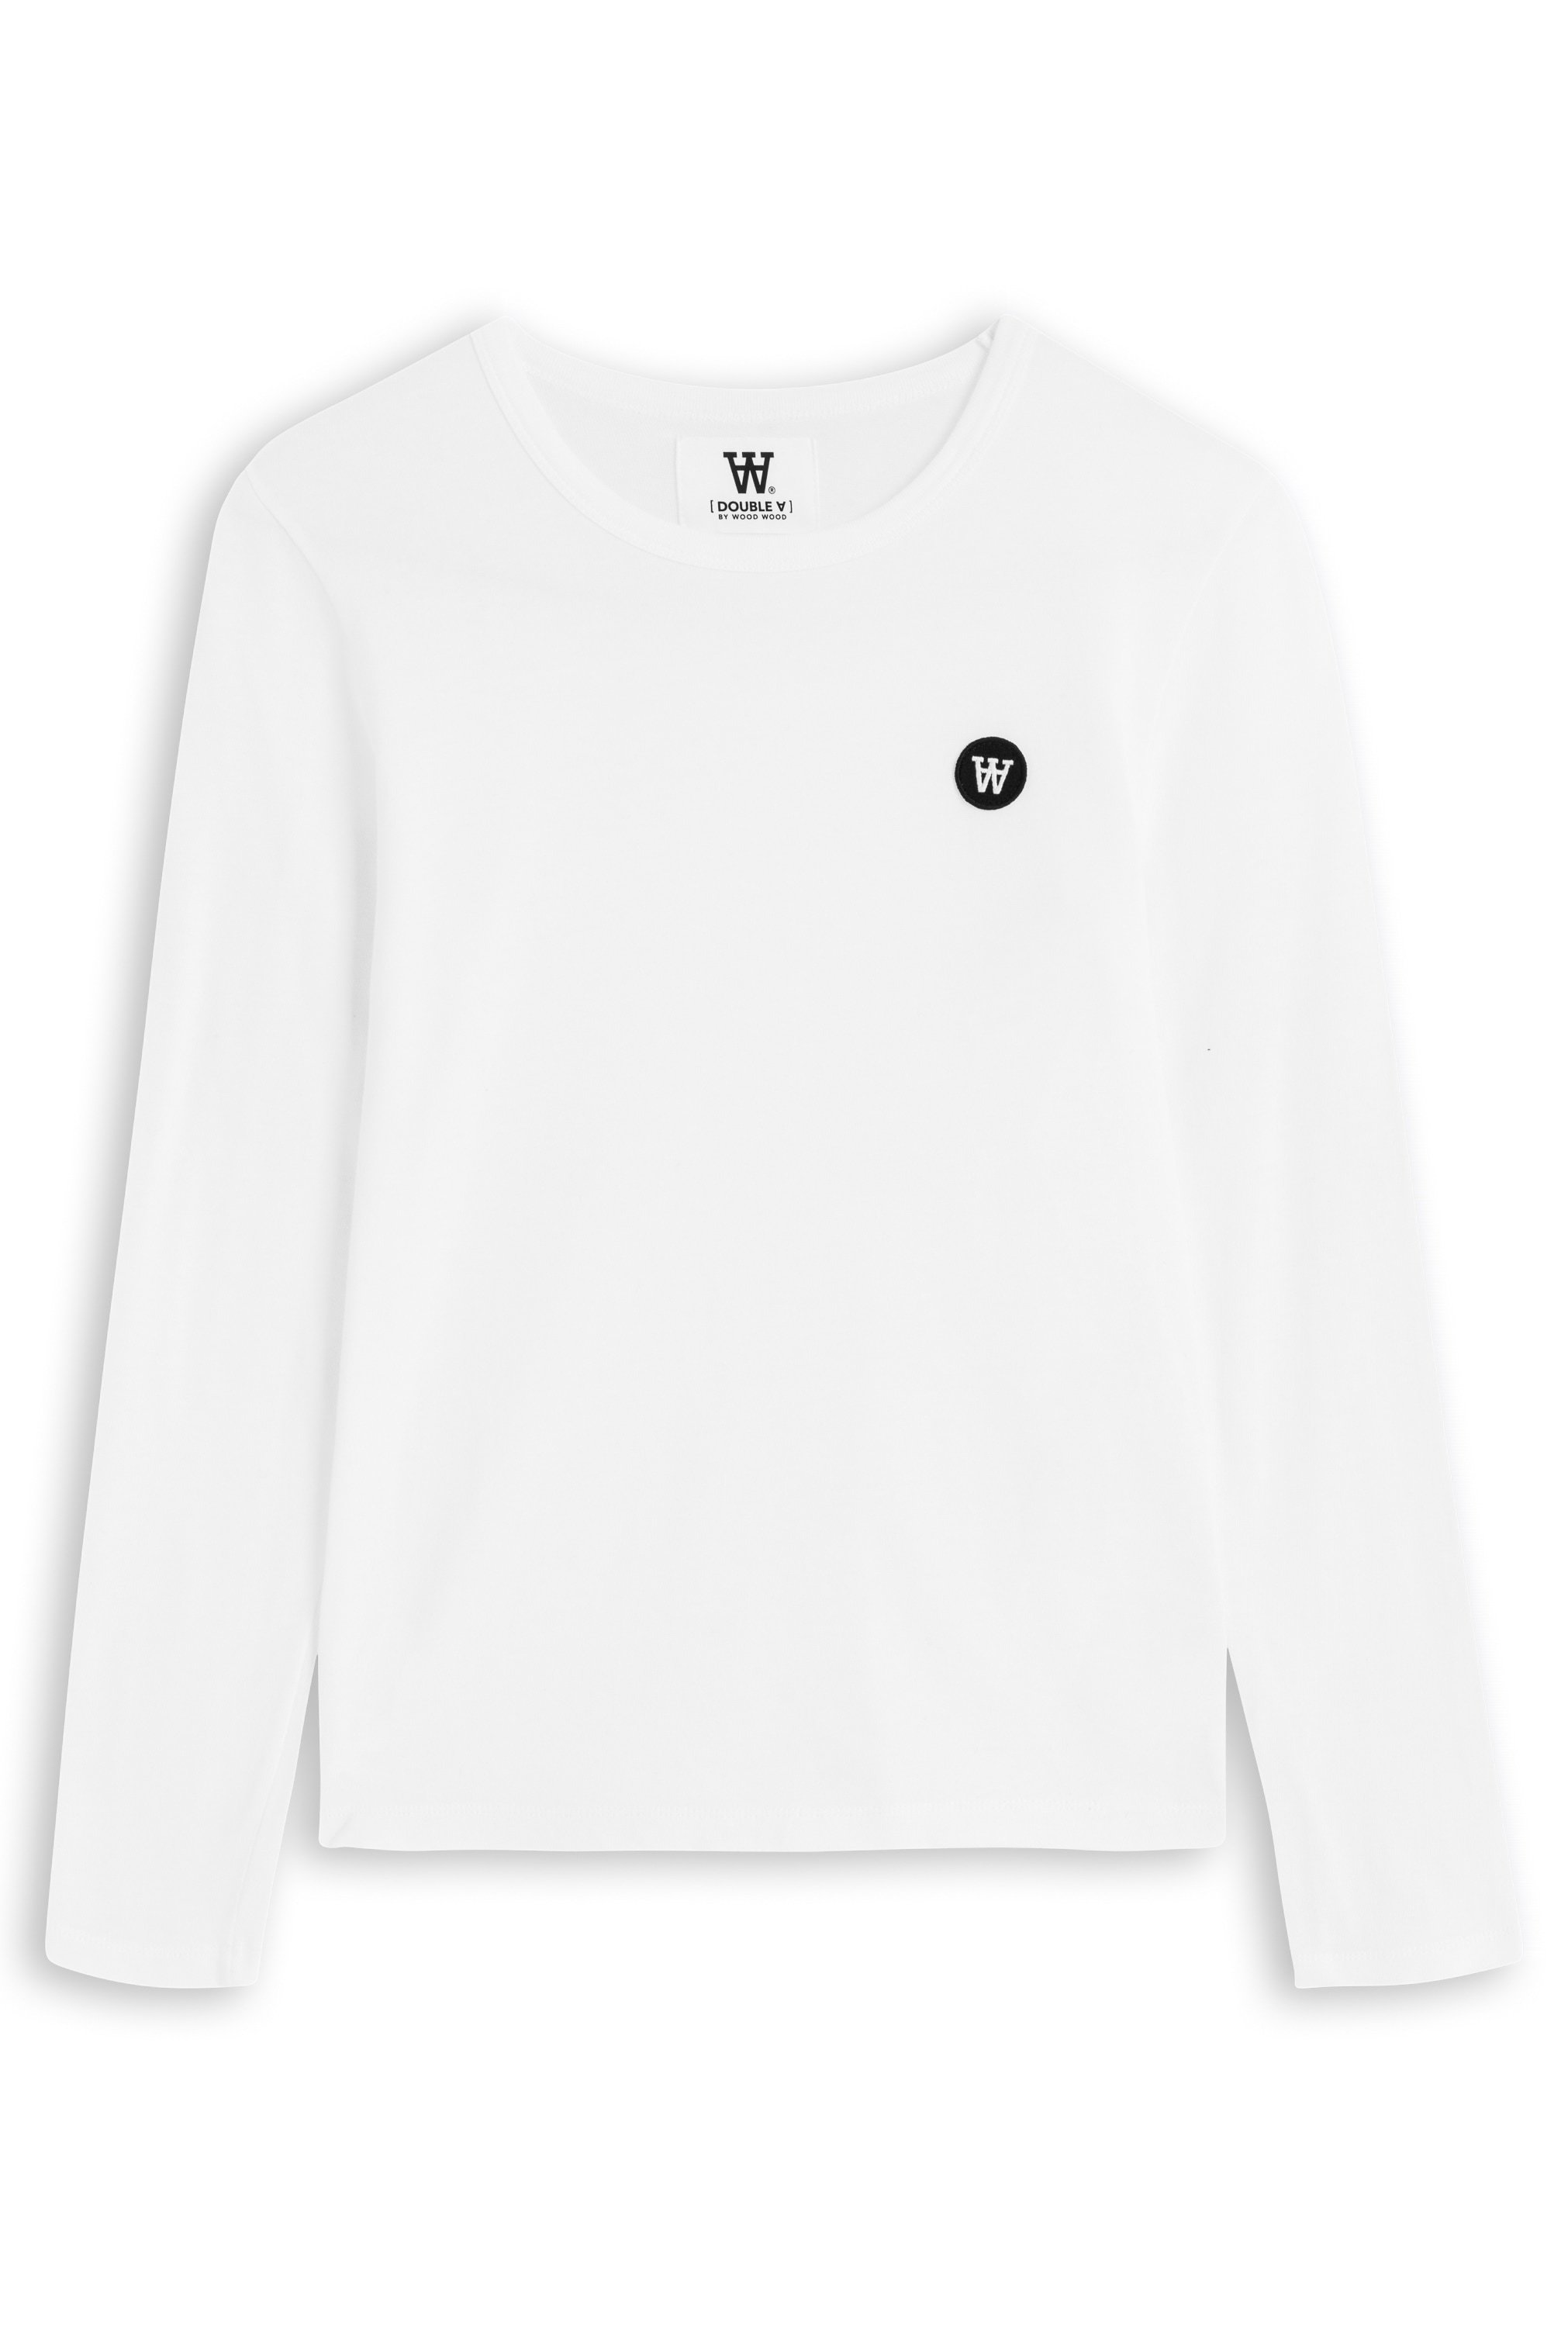 Wood Wood Double A Moa L/S t-shirt, bright white, small